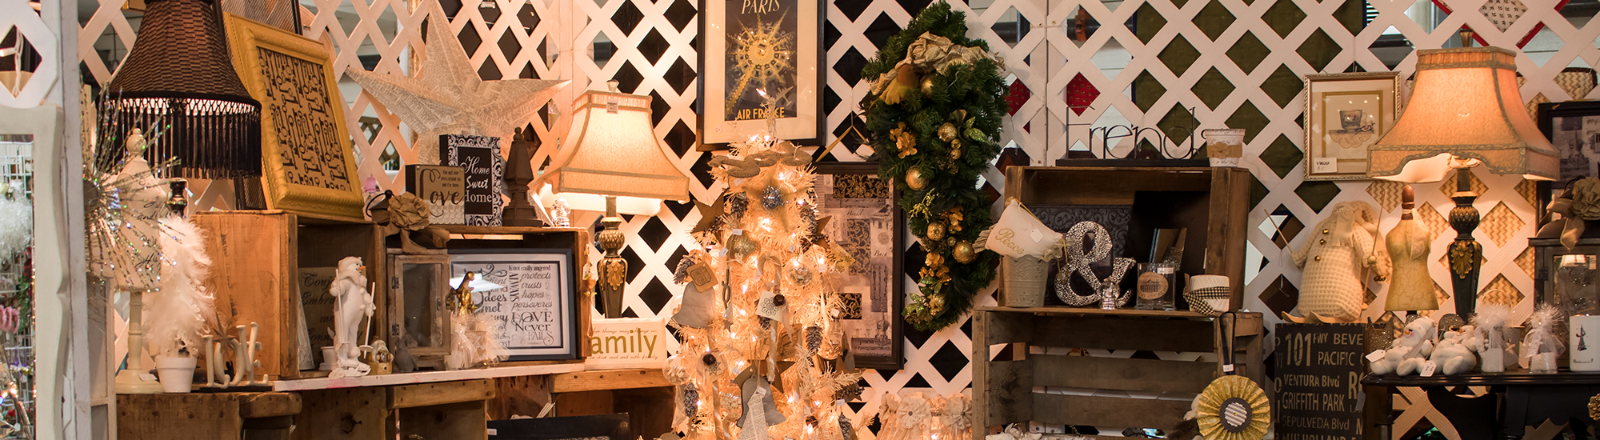 Display booth of mostly white and silver home decord and holiday items at the Country Christmas Bazaar in Canby